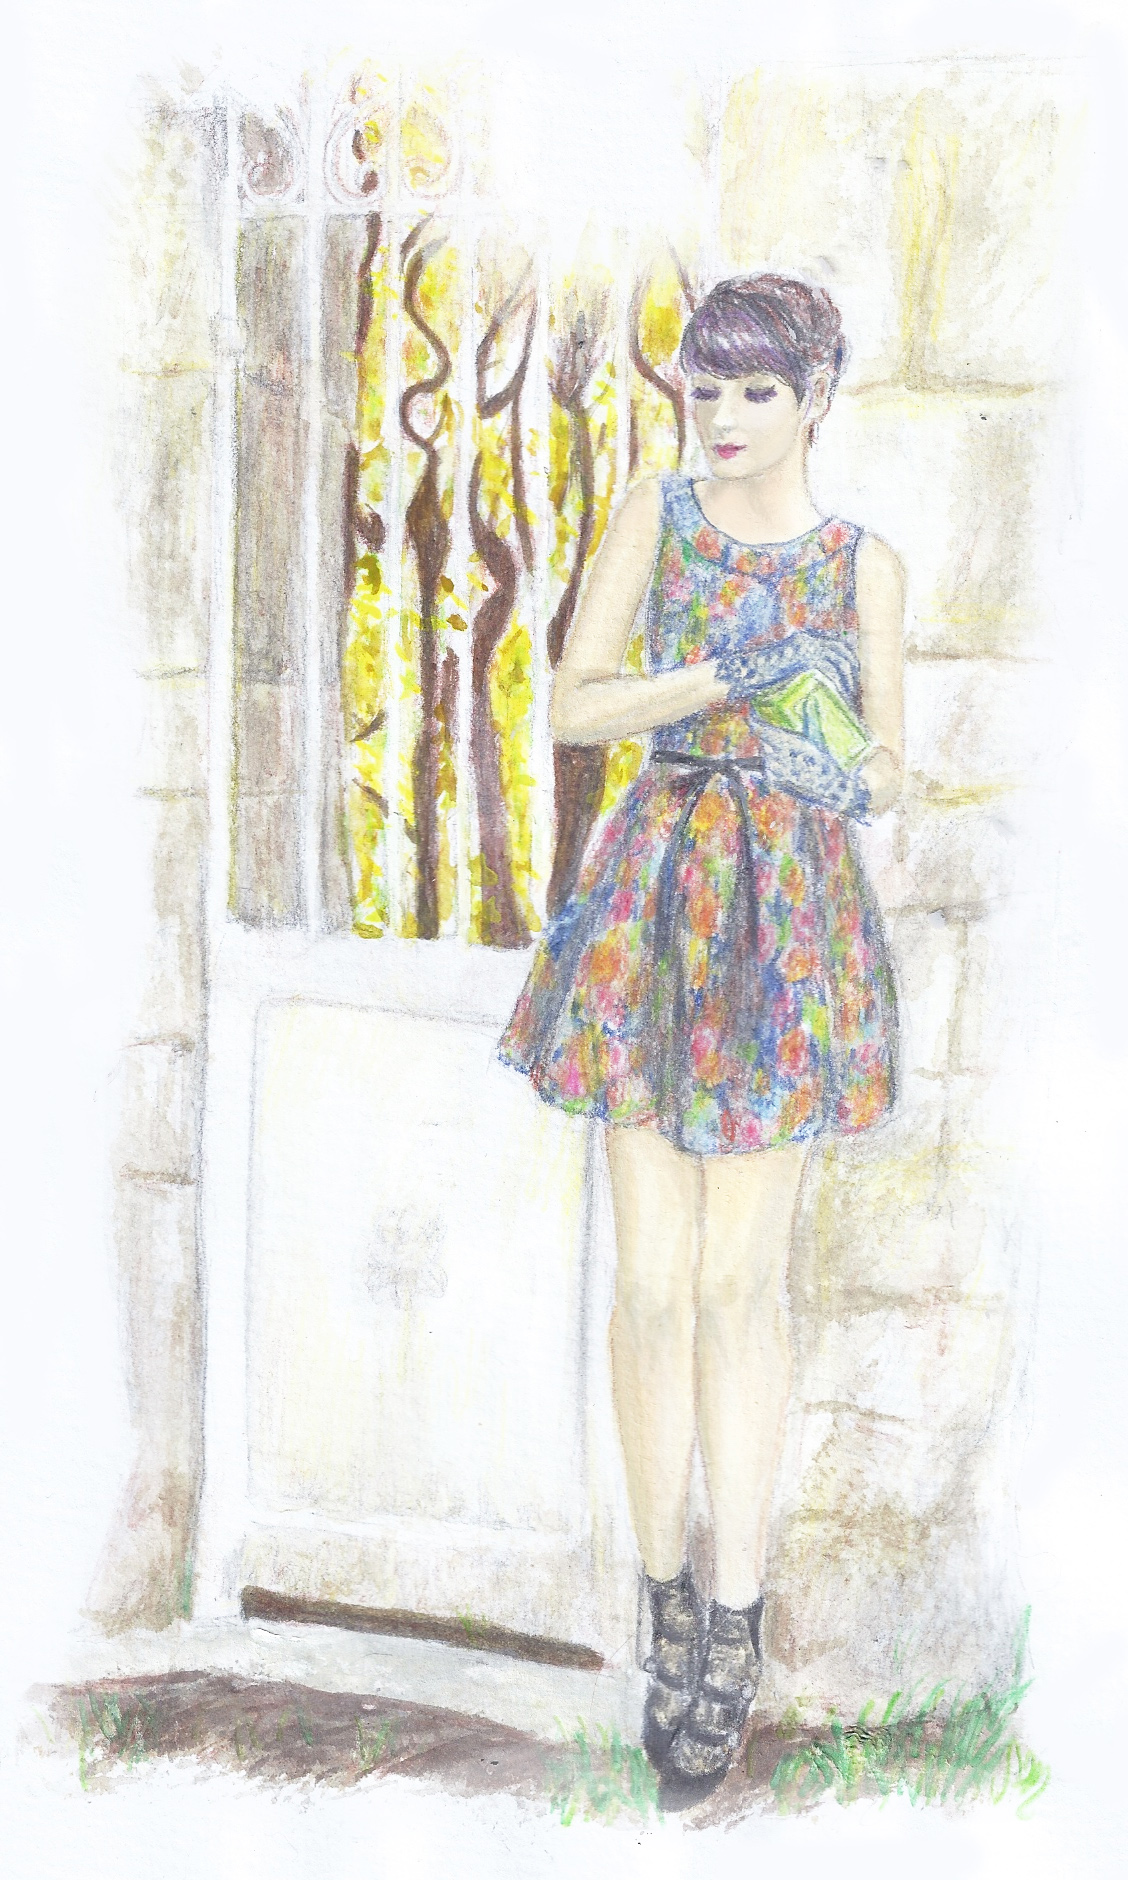 Nishe tapestry dress as seen on Alix of The Cherry Blossom Girl